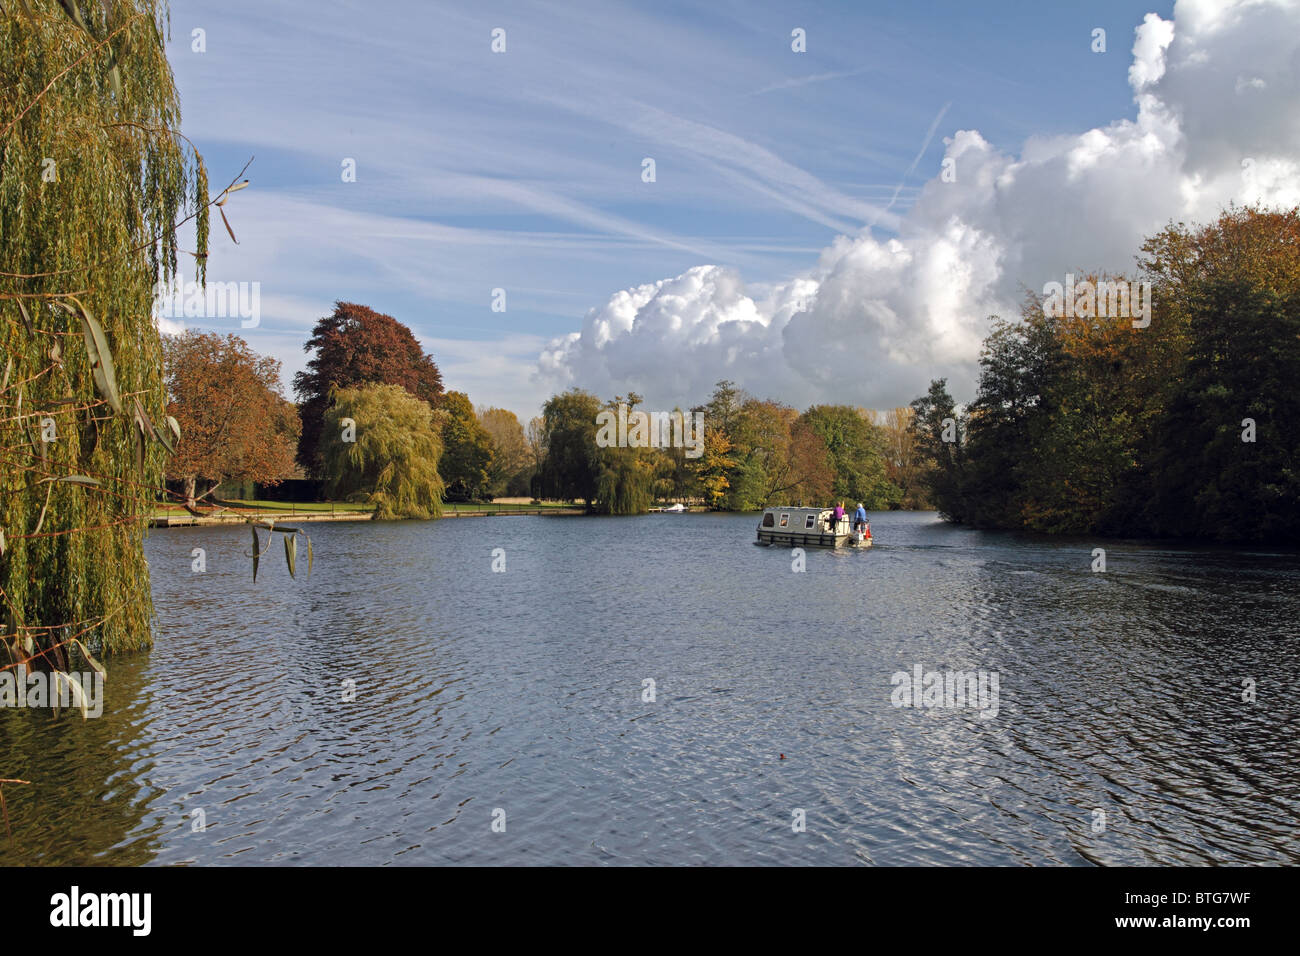 A river cruiser on the river Thames at Mednemham, Berkshire, England Stock Photo